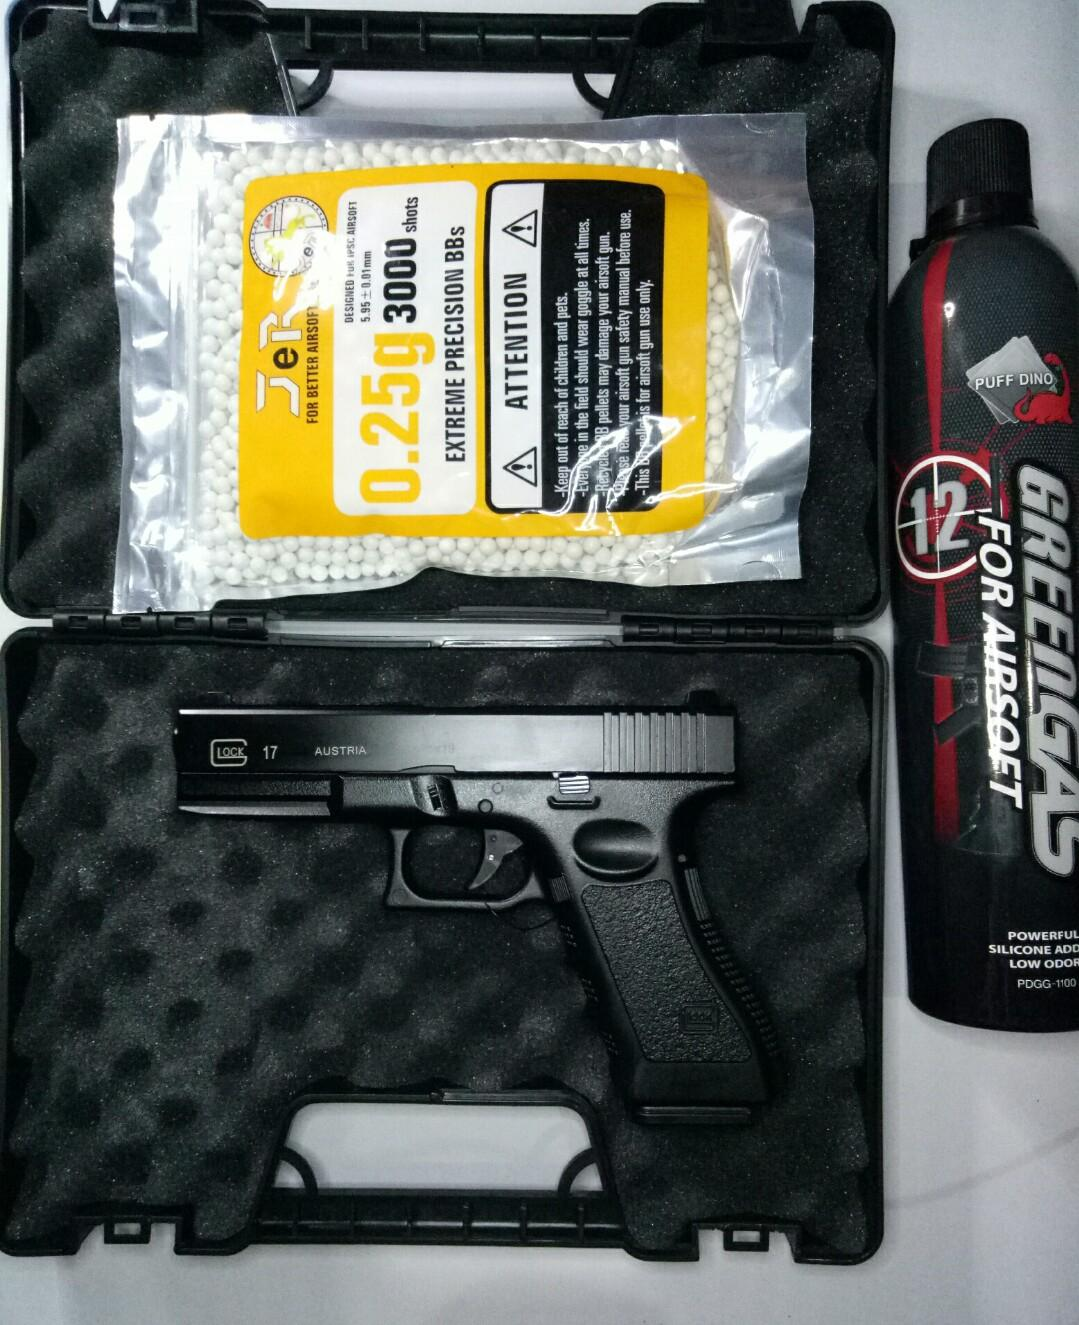 GLCK 17 GAS TYPE FULL METAL WITH FREE GAS TANK AND FREE 3000 PCS OF PELLETS